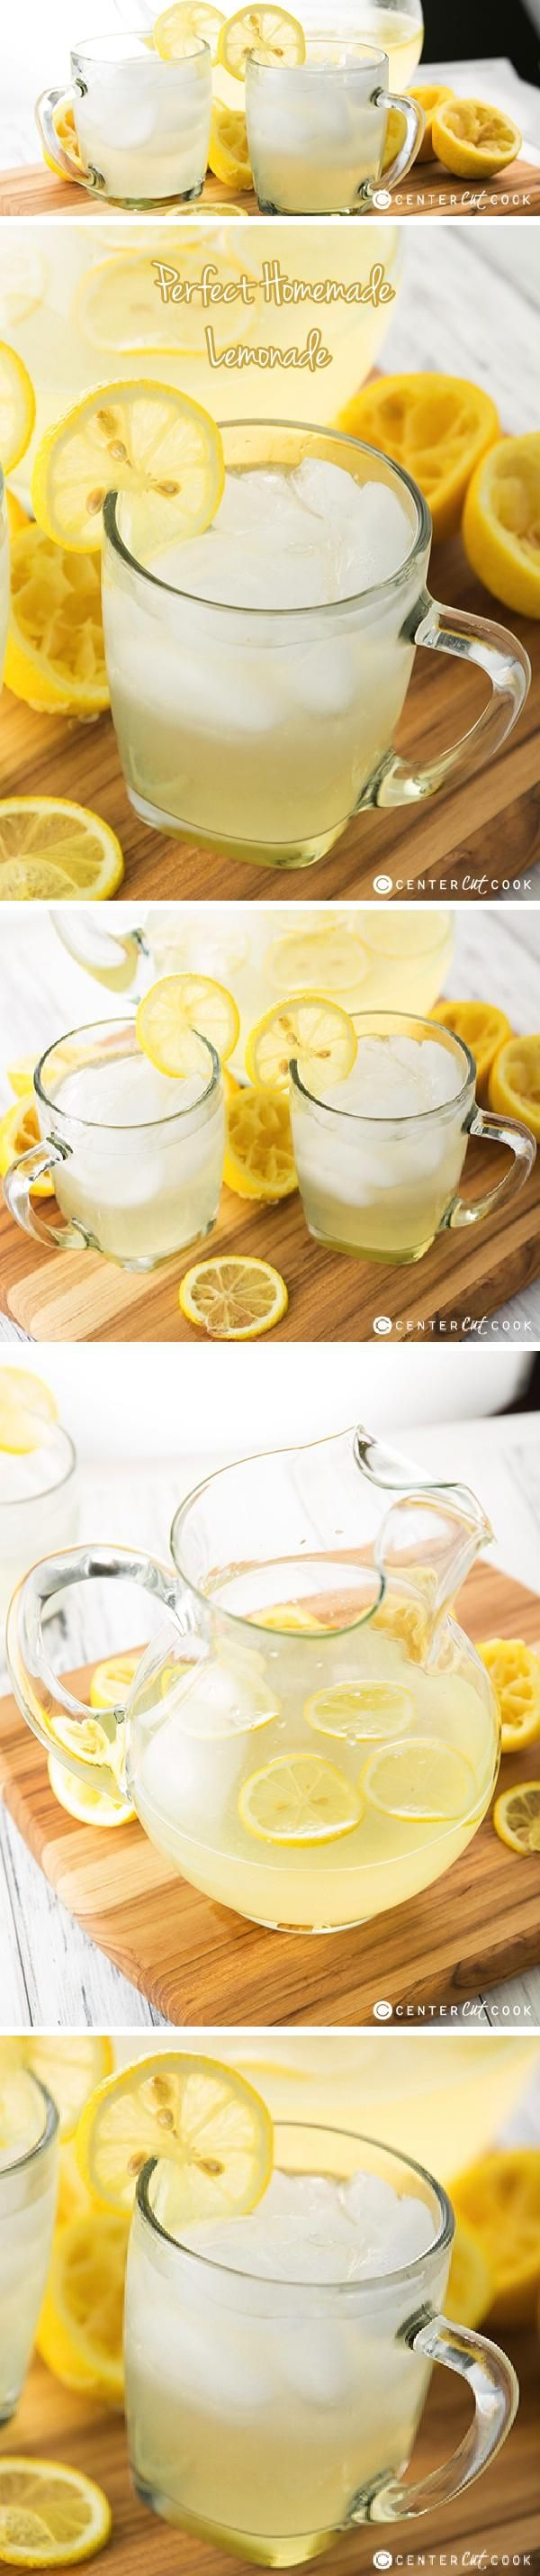 Homemade Lemonade Recipe made with fresh squeezed lemon juice! This is the taste of summer, right here! It is so frefreshing with just the right amounts of lemon juice, water, and sugar.